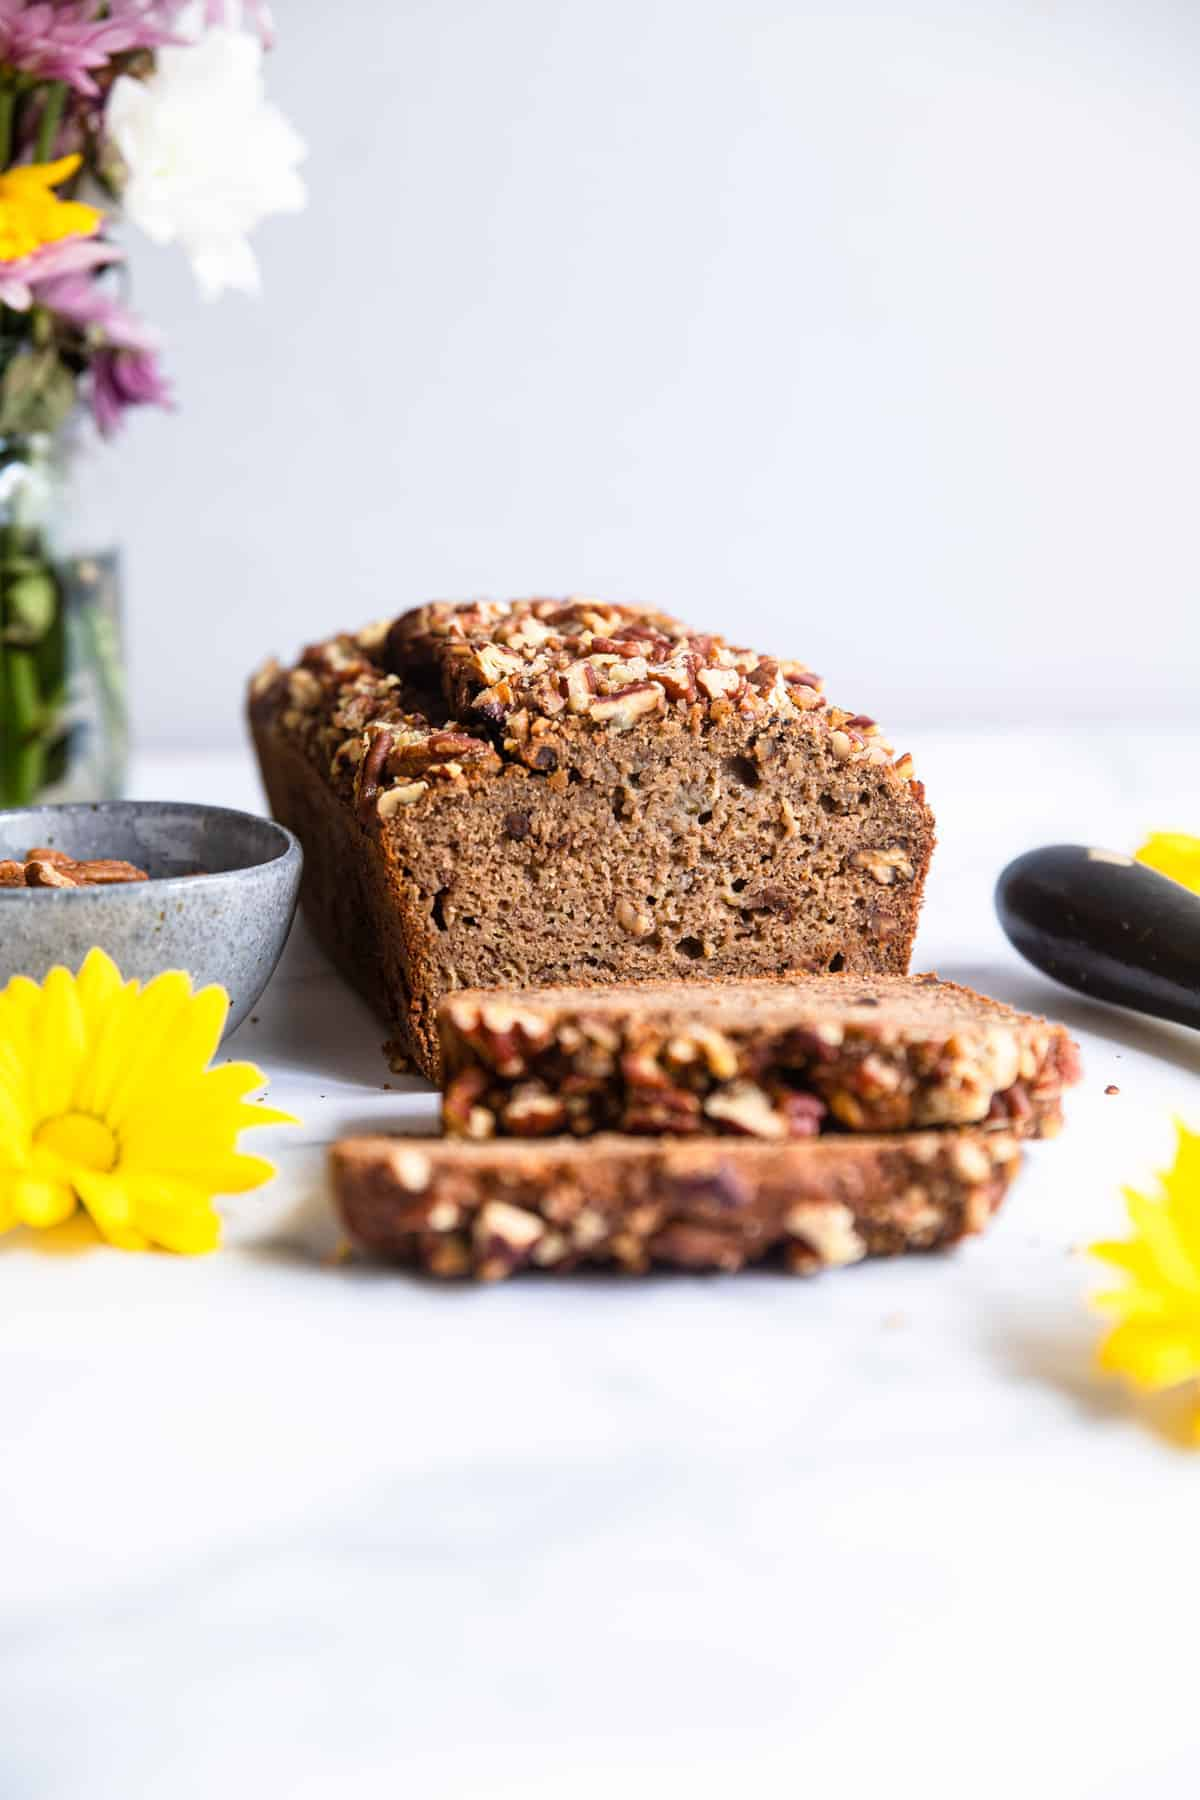 Sugar free banana bread sliced and sitting on a table